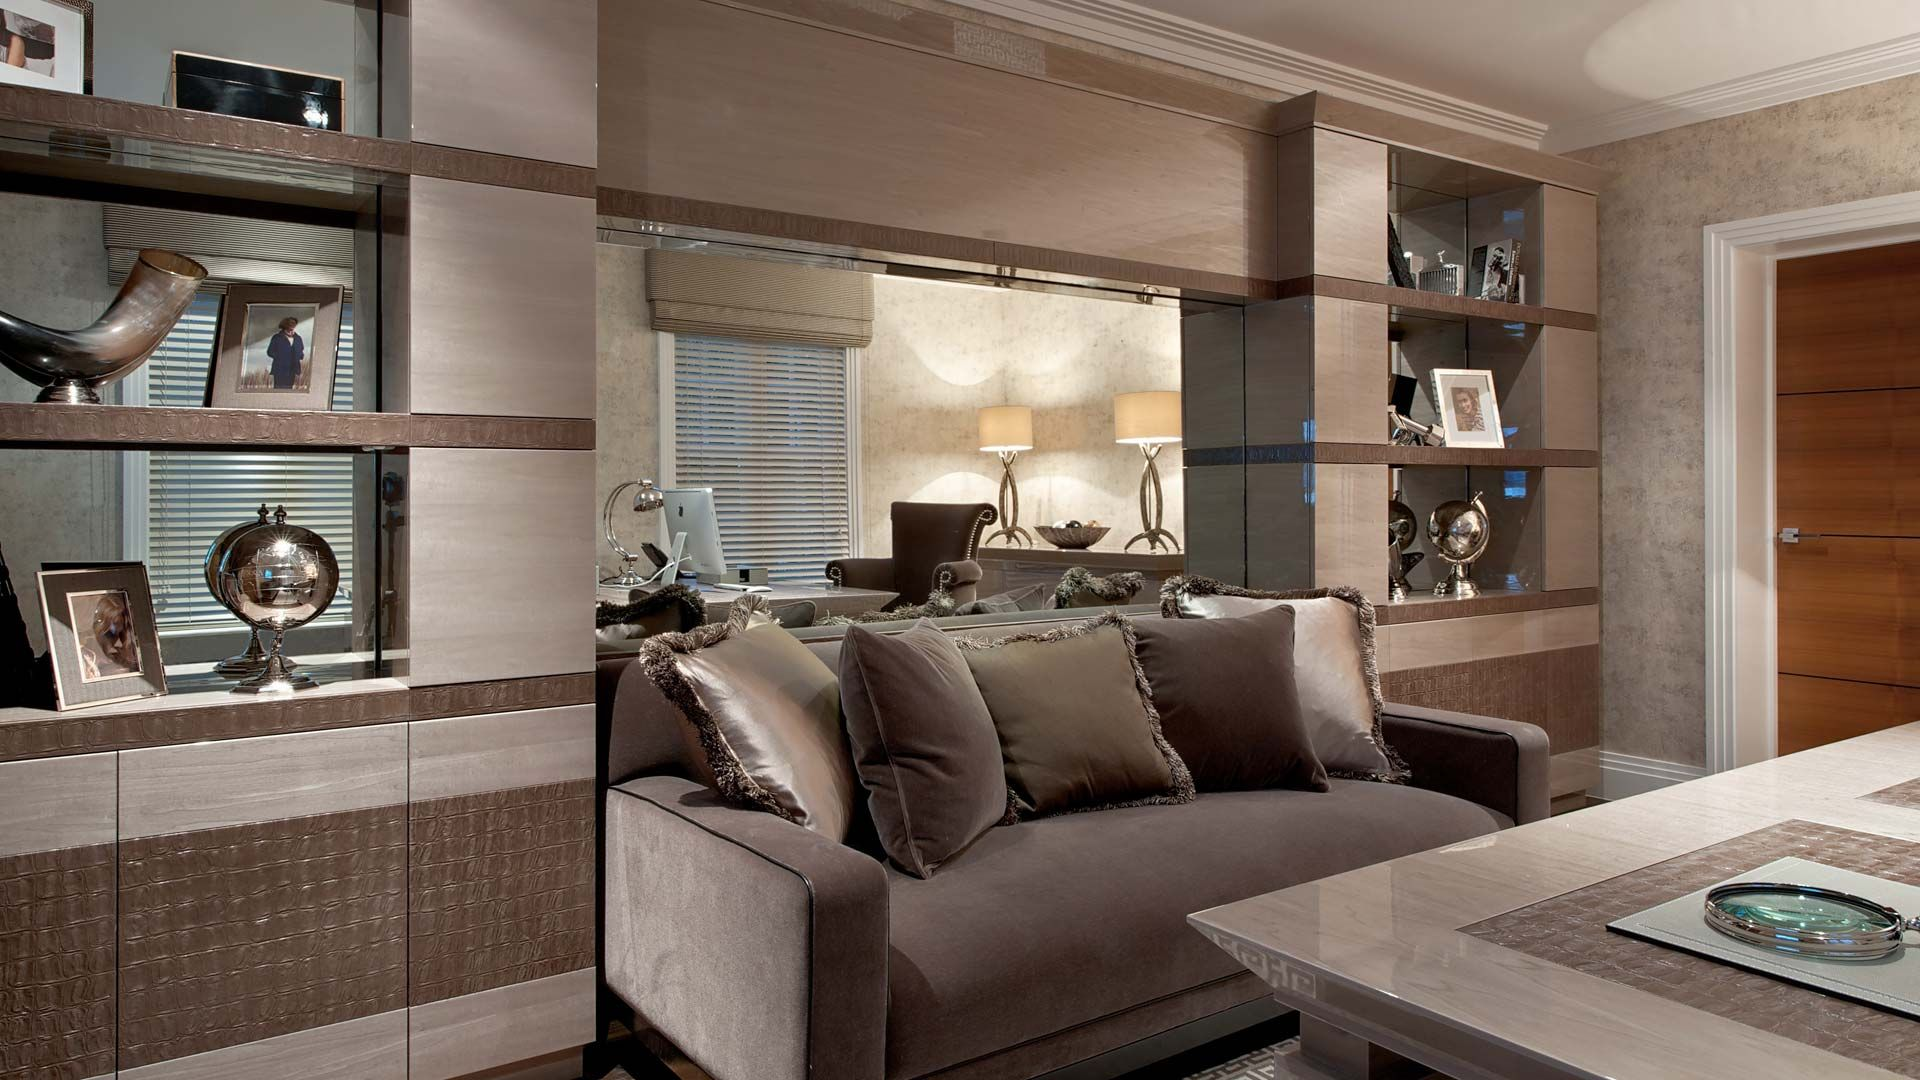 Superieur Private Estate   Kingswood, Uk Project, Interior Design Portfolio, Hill  House Interiors Are A London Based Interior Design Company With A Showroom  In ...